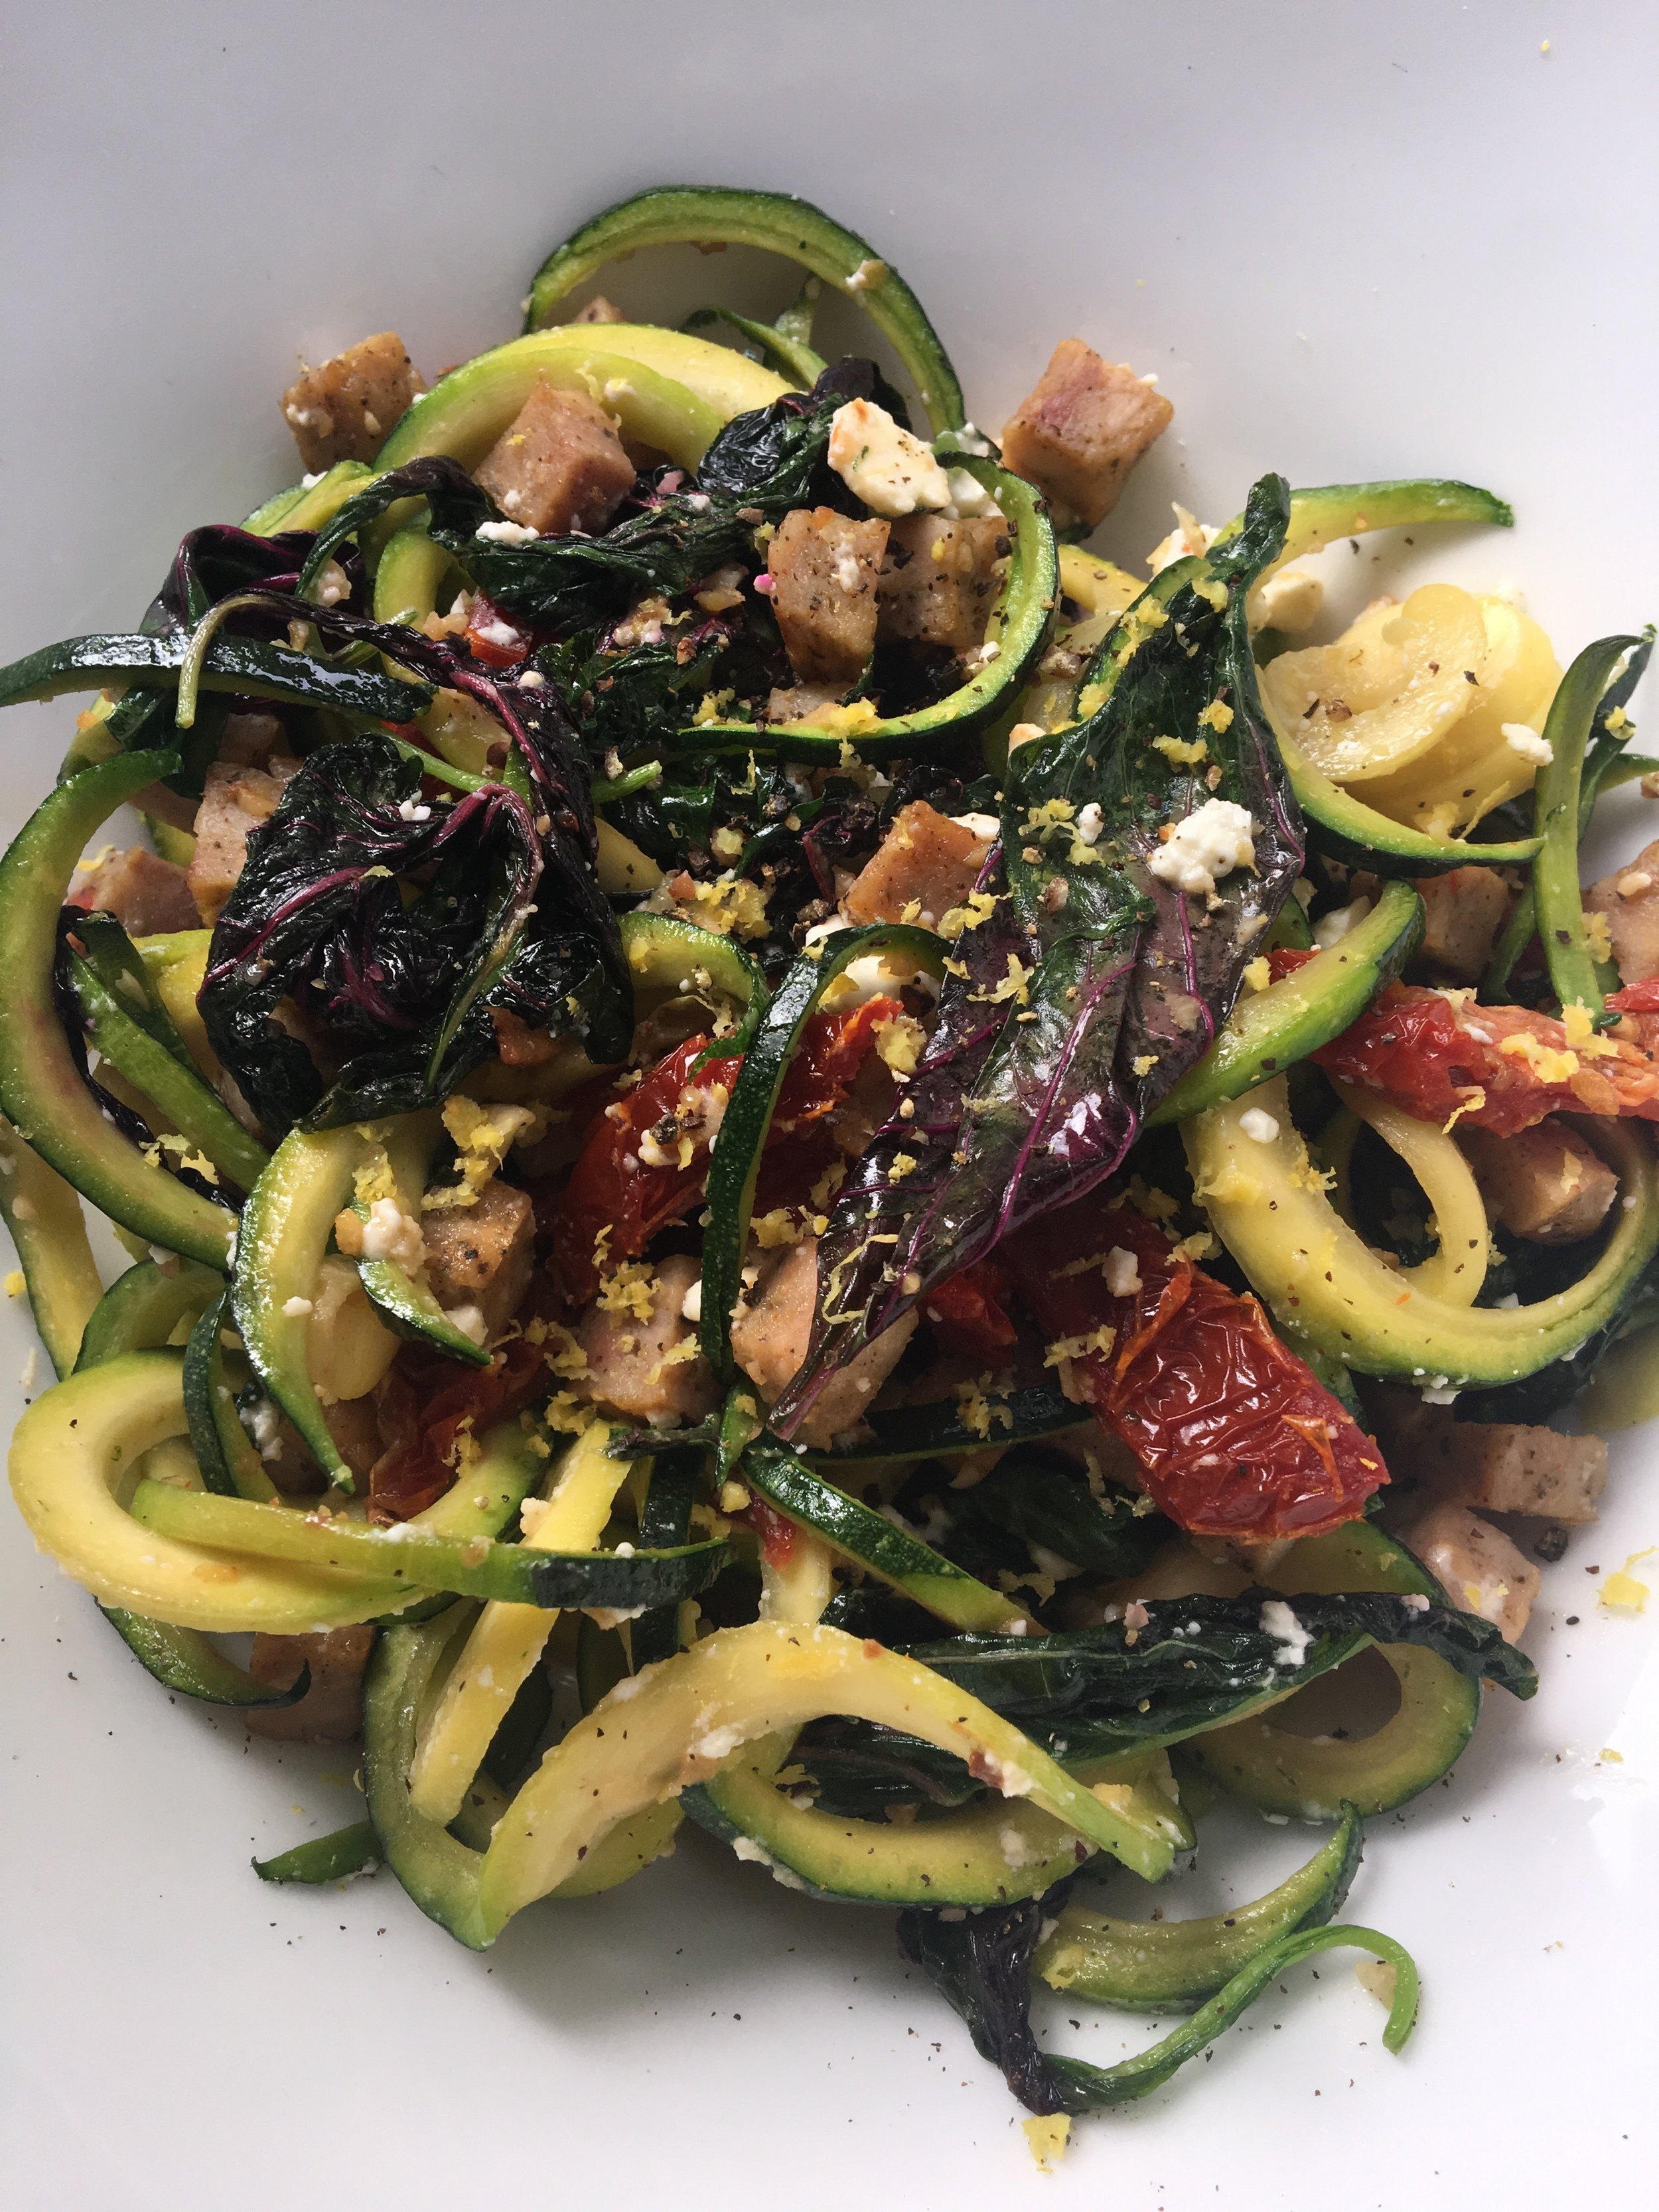 Zucchini Noodle / Chicken Sausage / Bulgarian Feta / Purple Callaloo / Sun dried Tomato / Lemon Zest